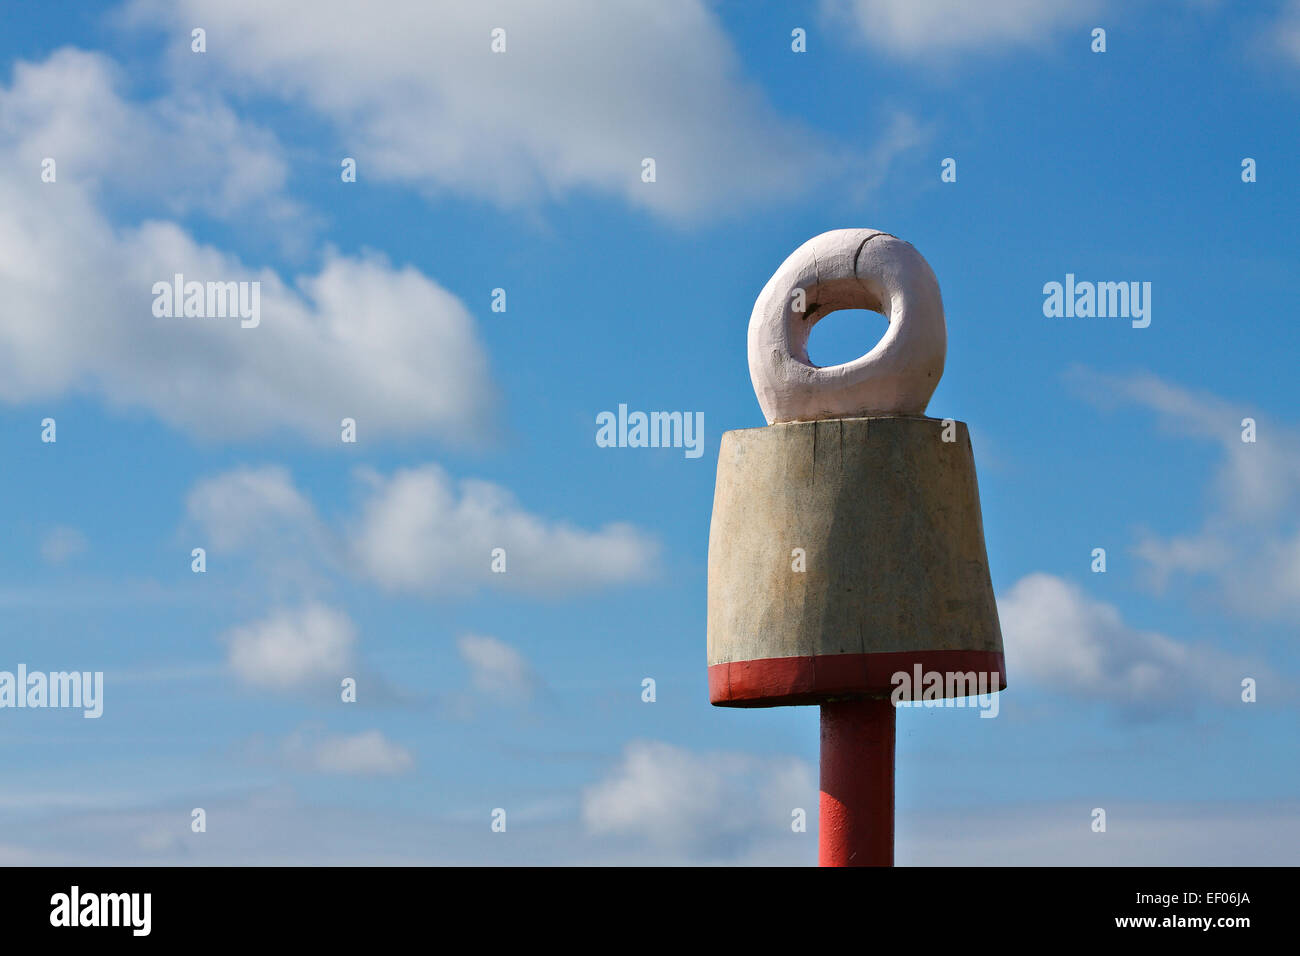 A sign against a blue sky. - Stock Image